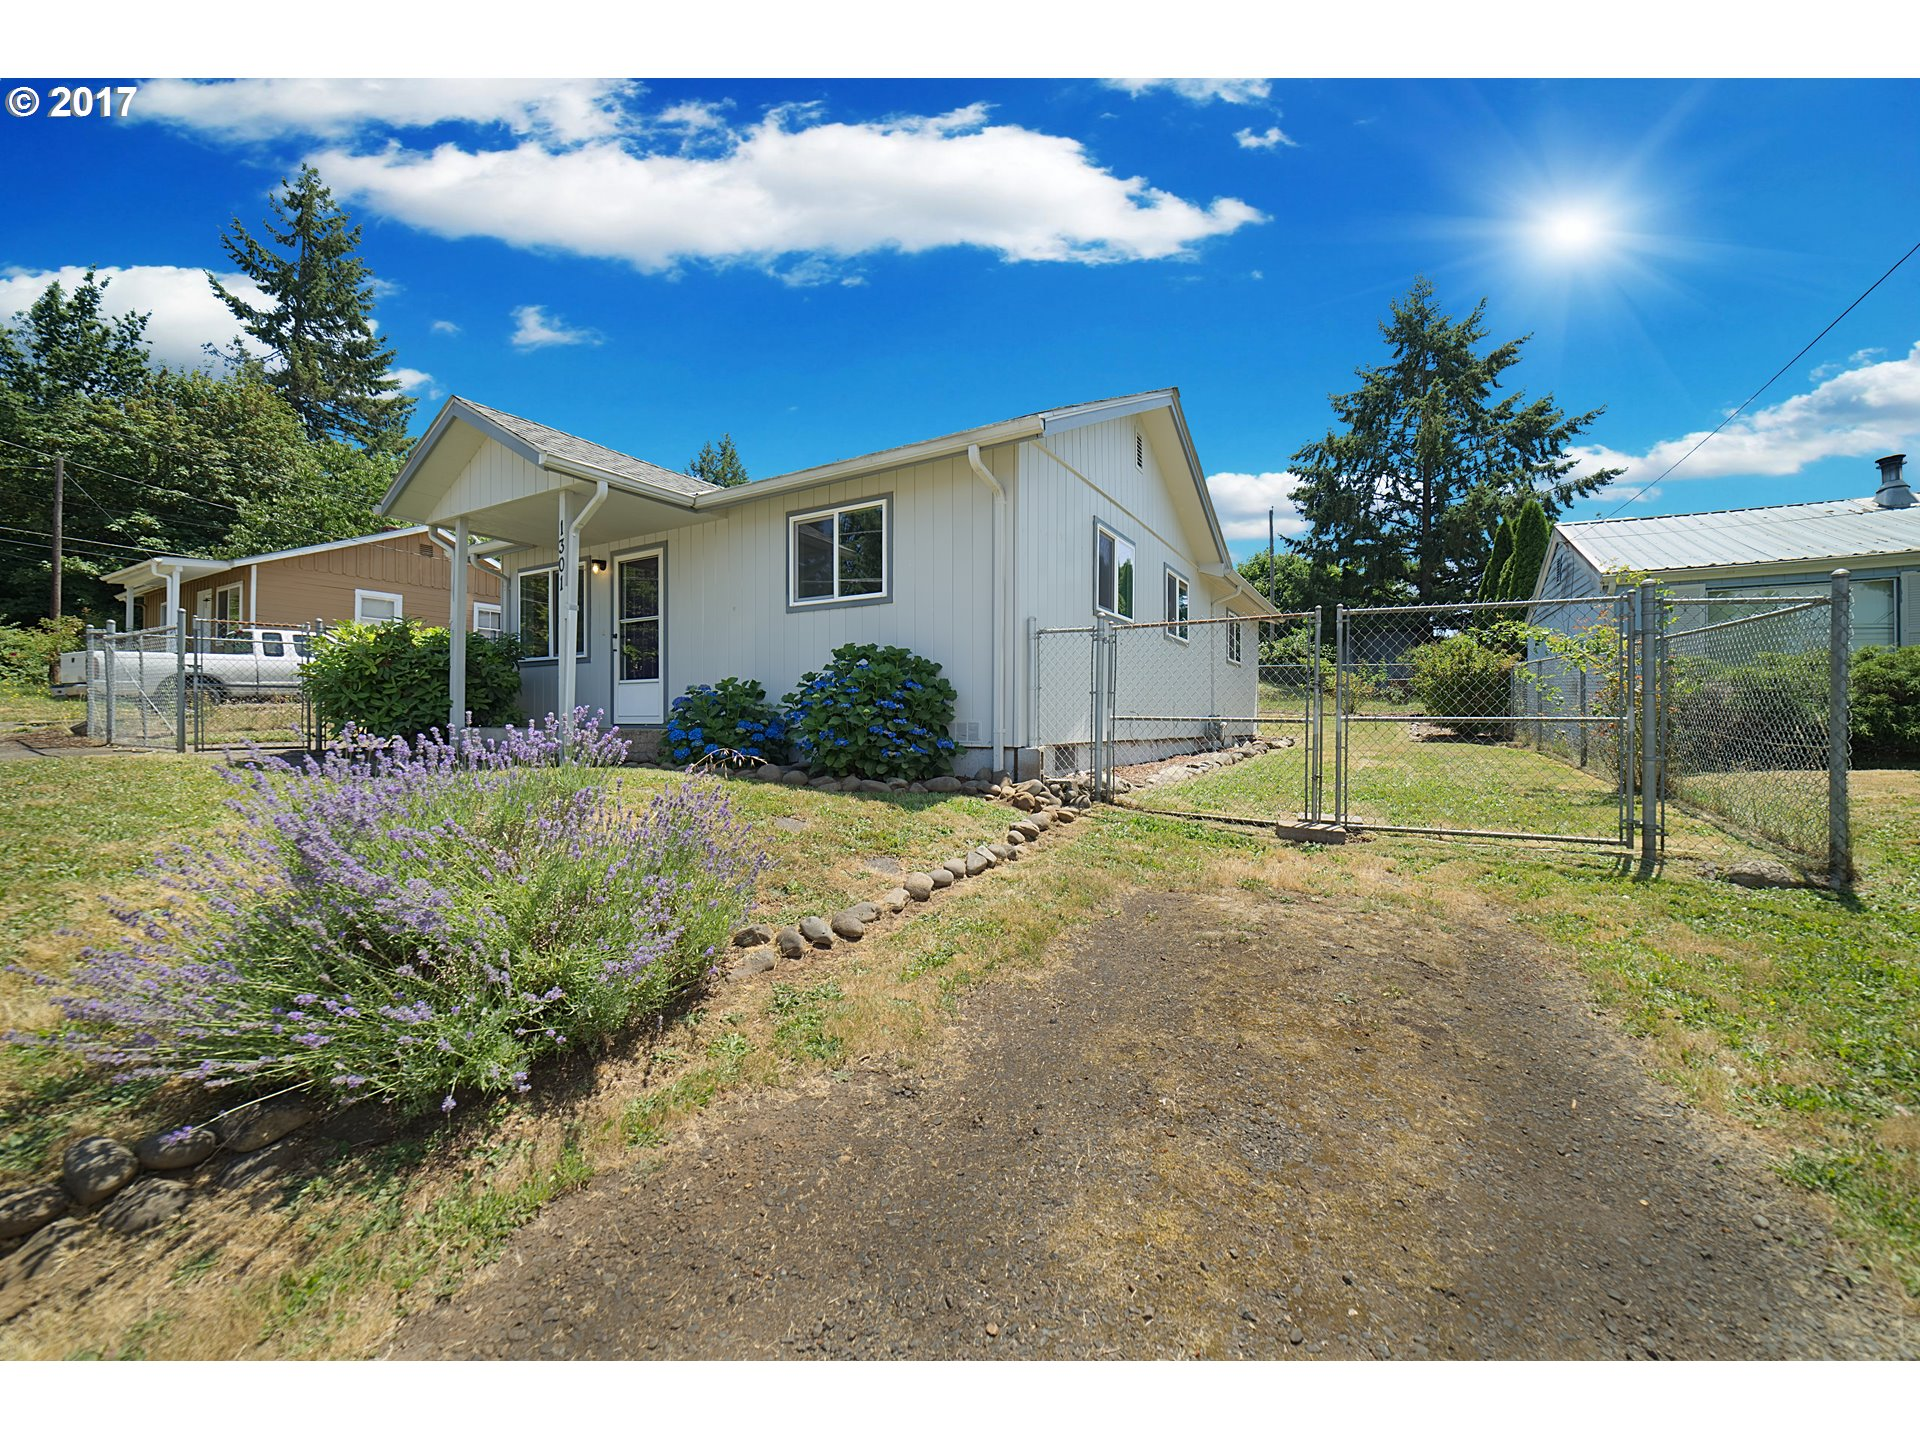 1301 TYLER AVE, Cottage Grove, OR 97424